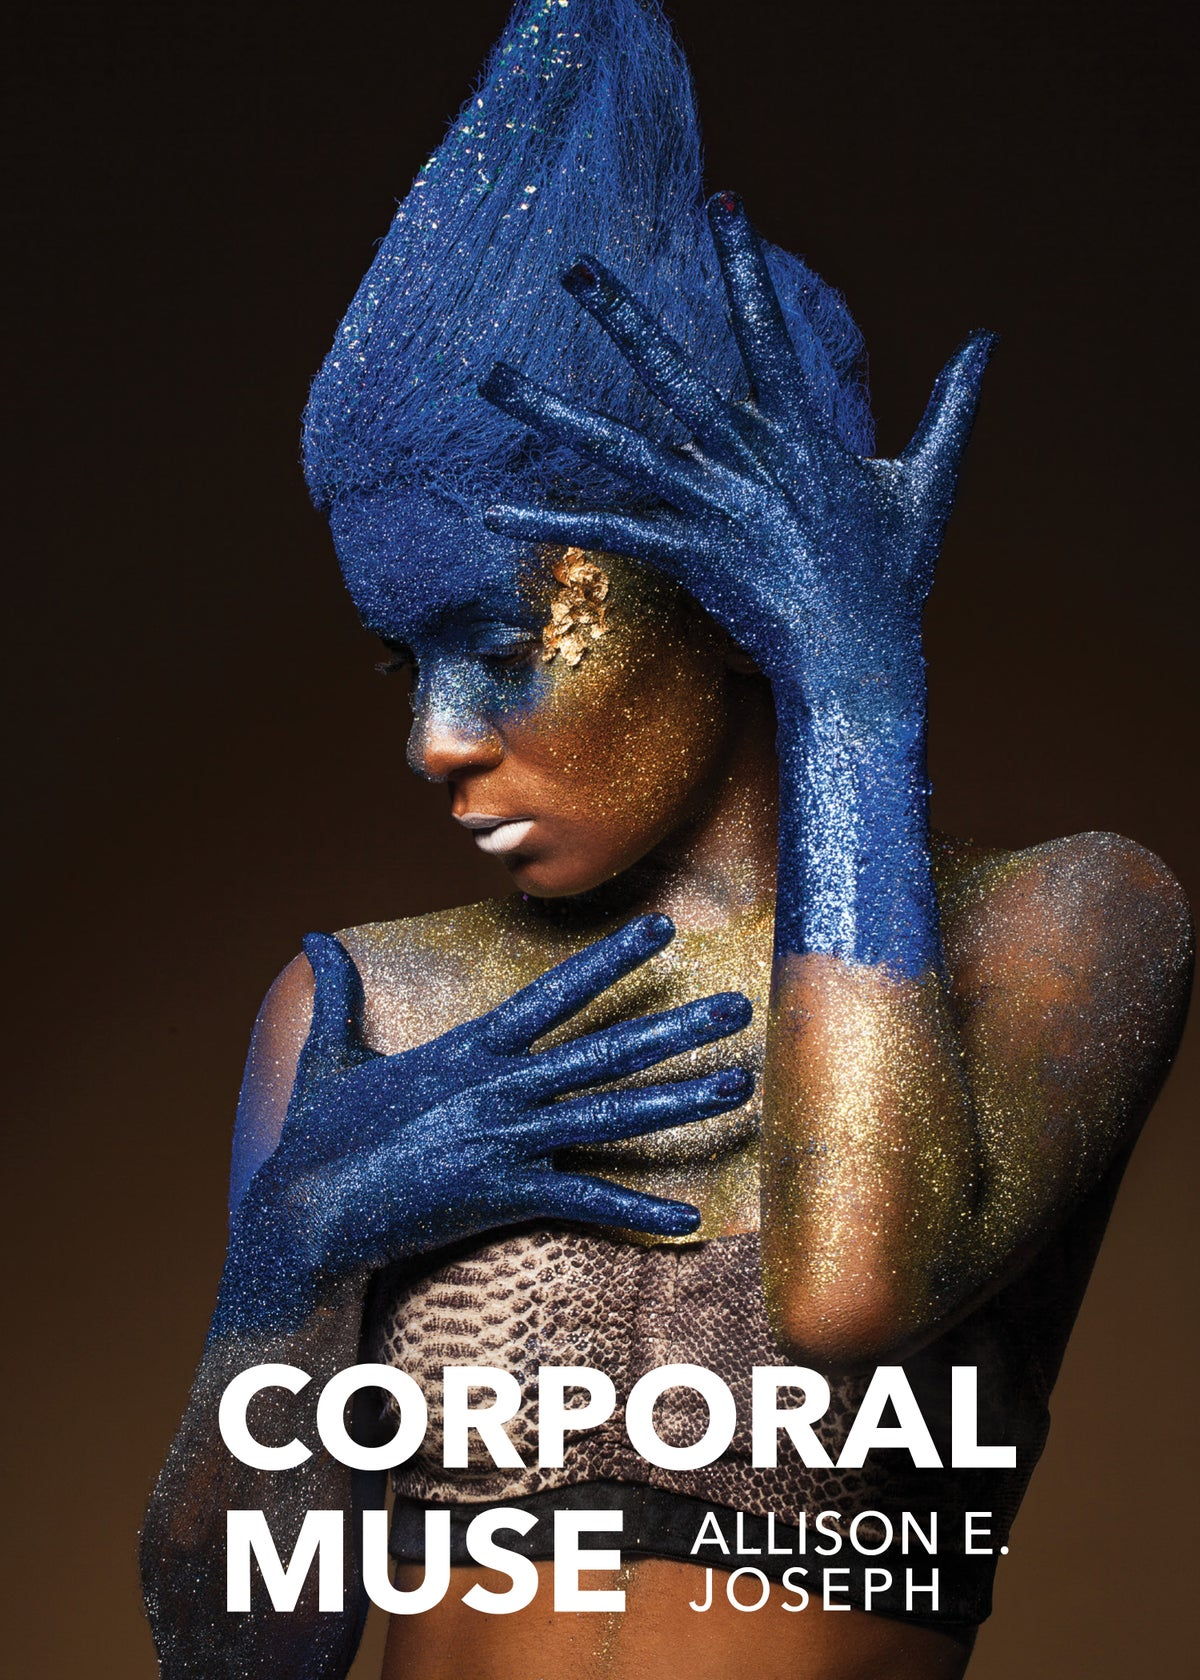 Image of Corporal Muse by Allison E. Joseph